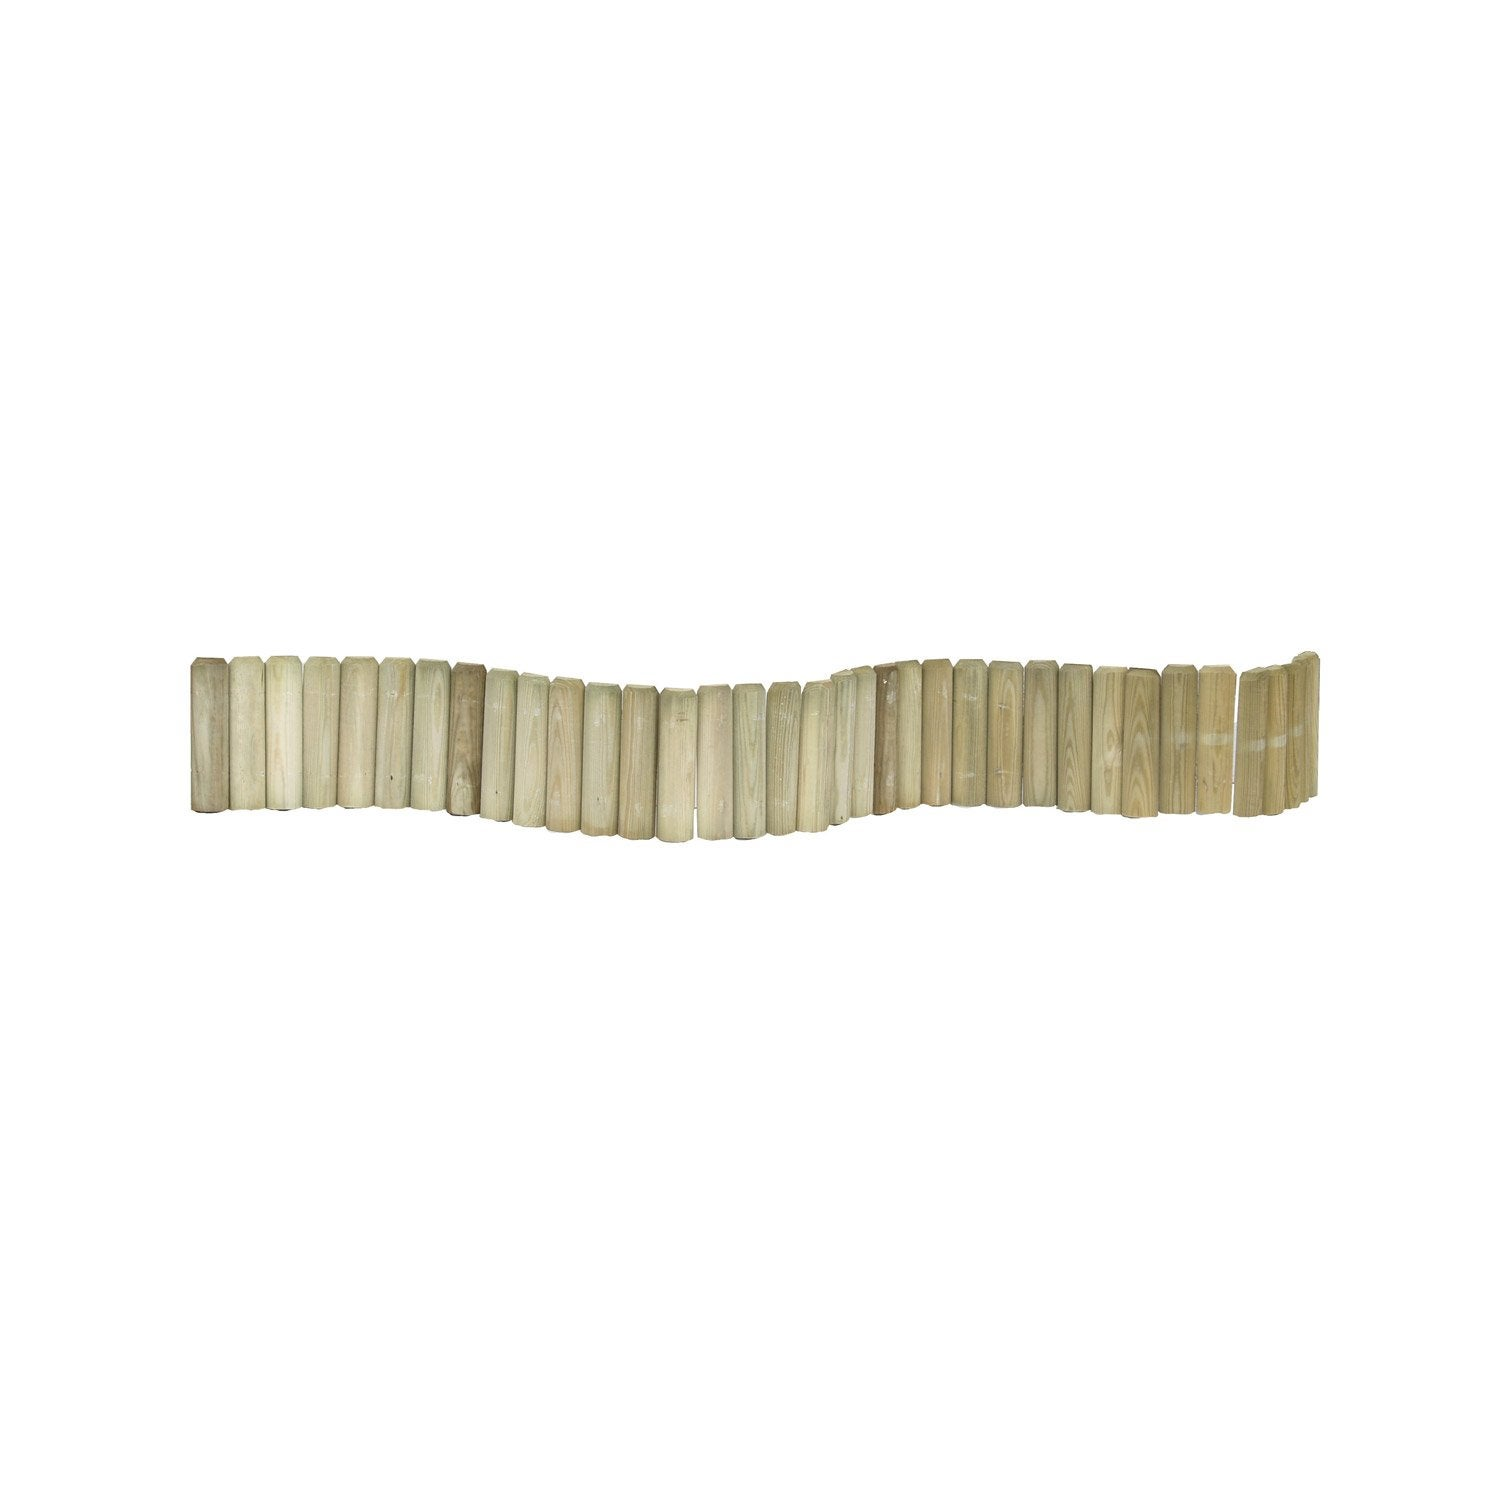 Bordure planter 1 2 rondin bois naturel x cm for Bordure jardin leroy merlin